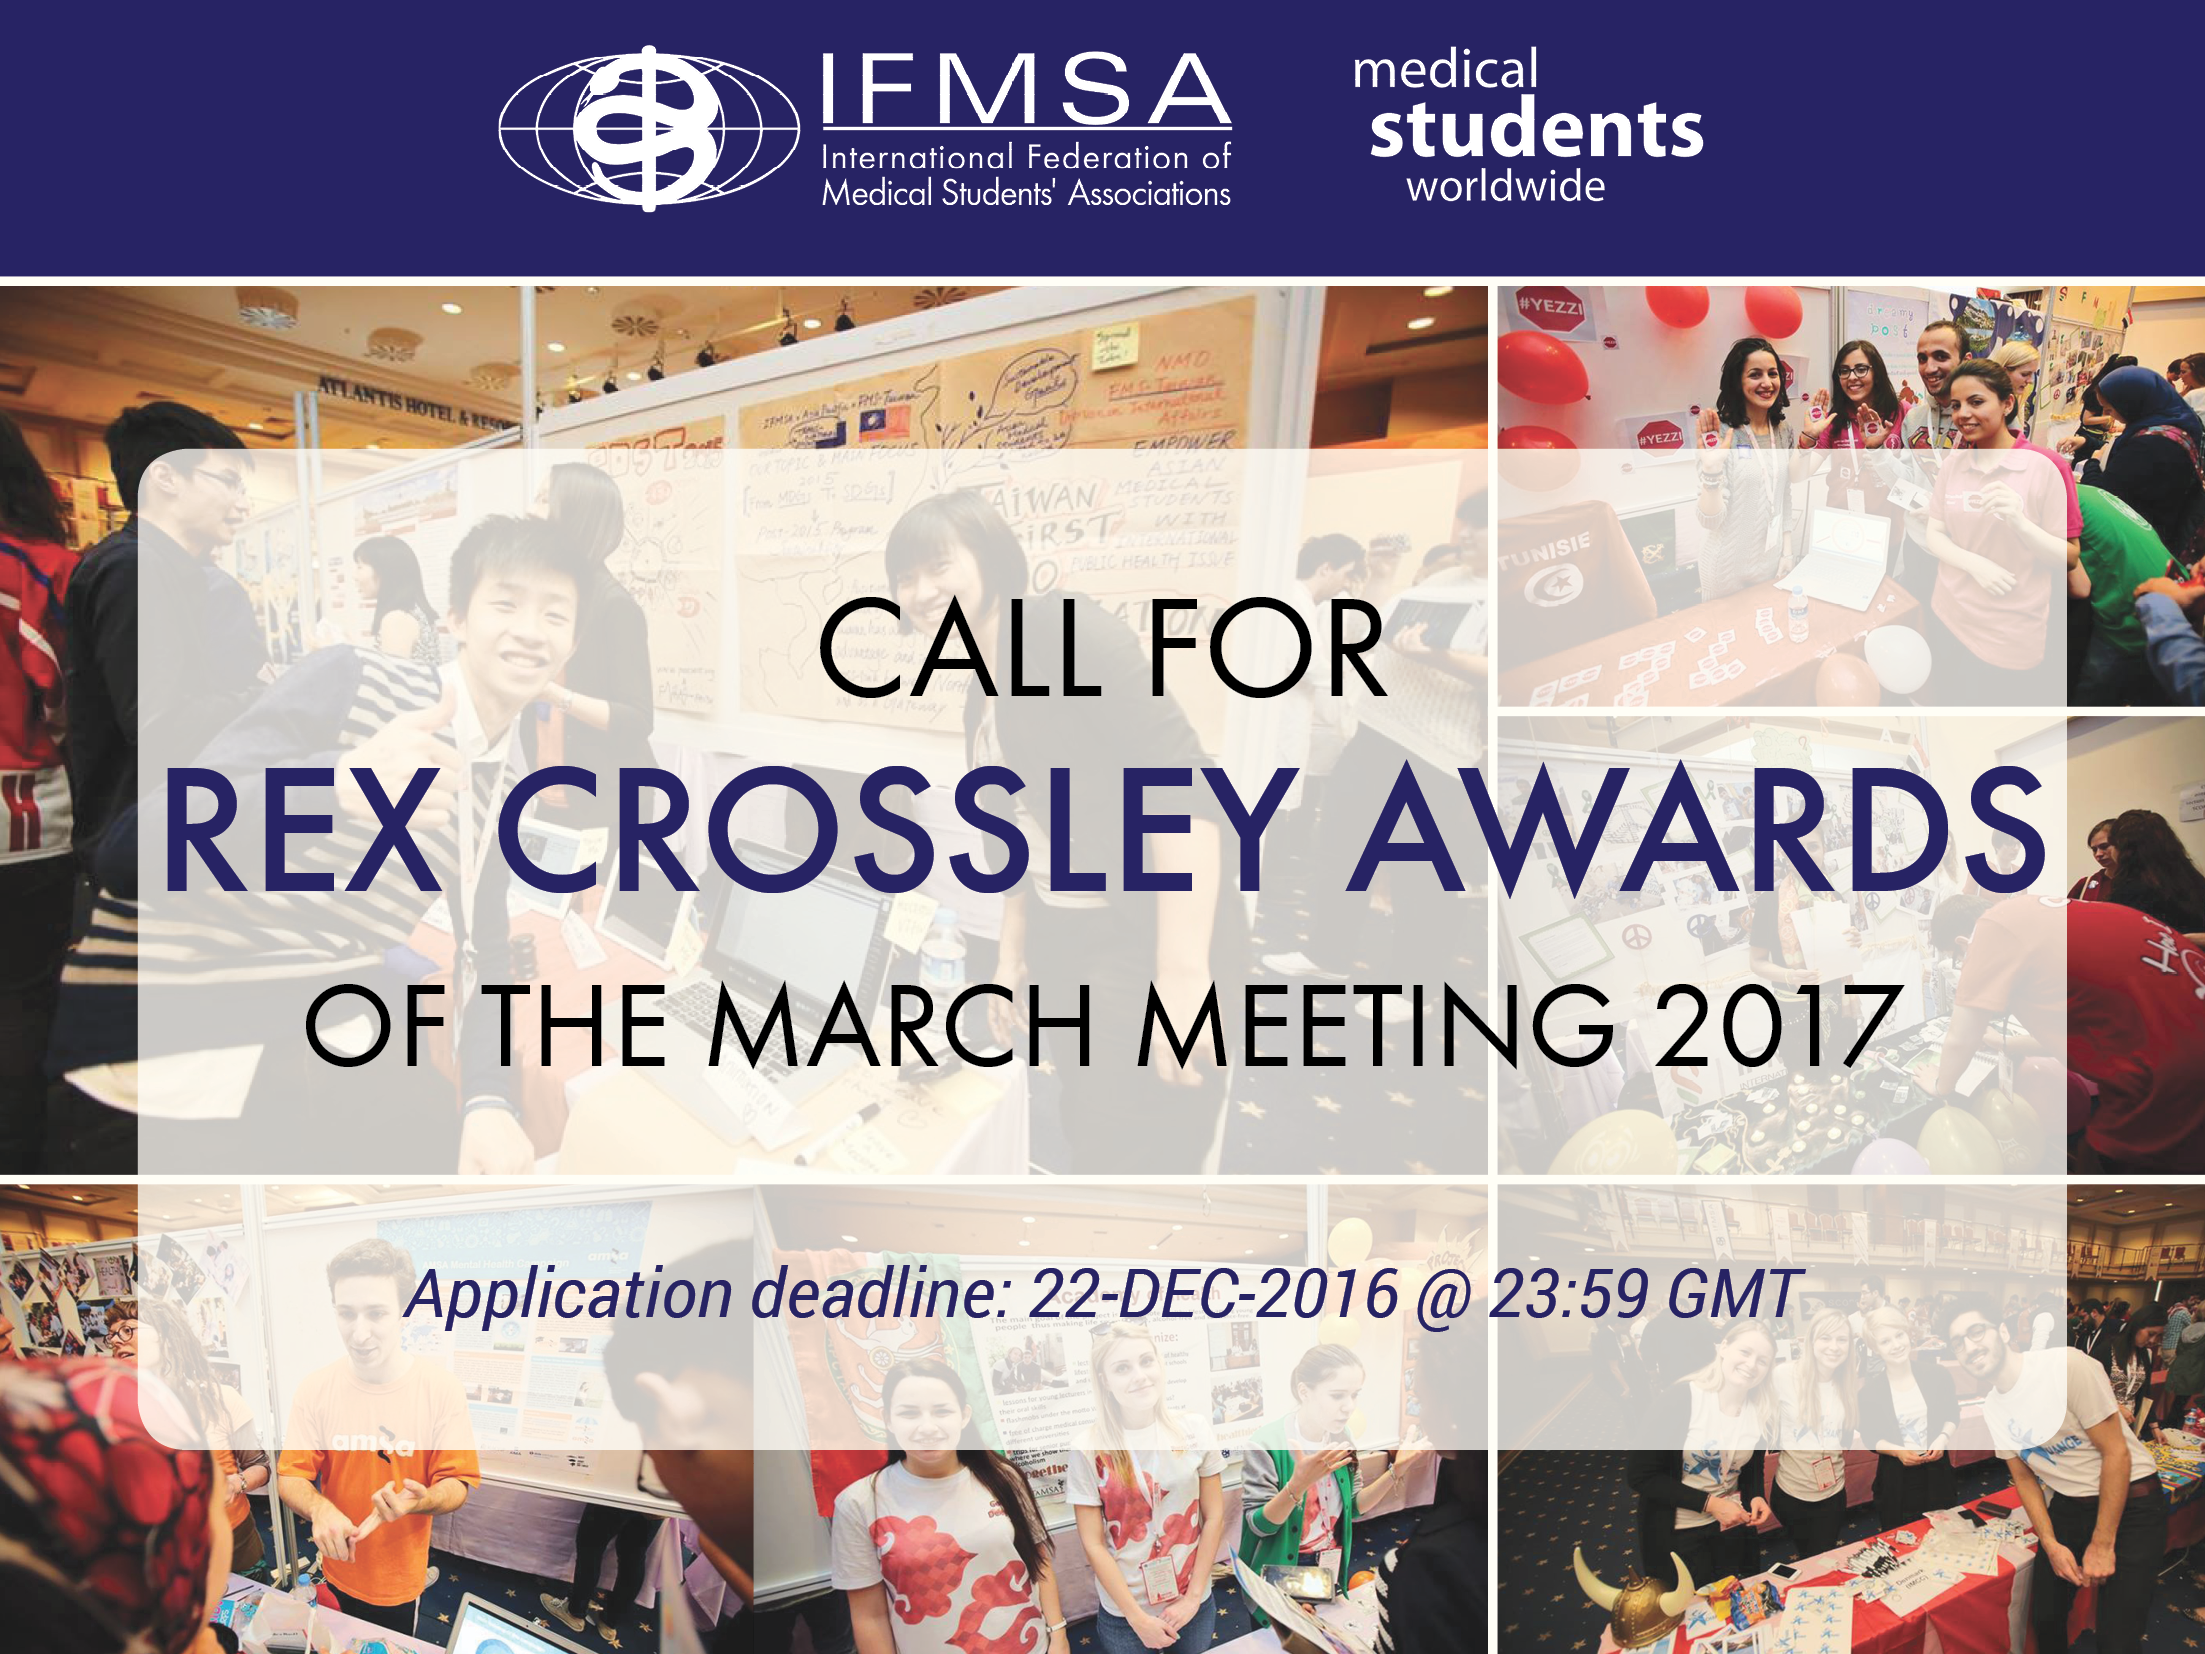 MM2017: Call for Rex Crossley Awards